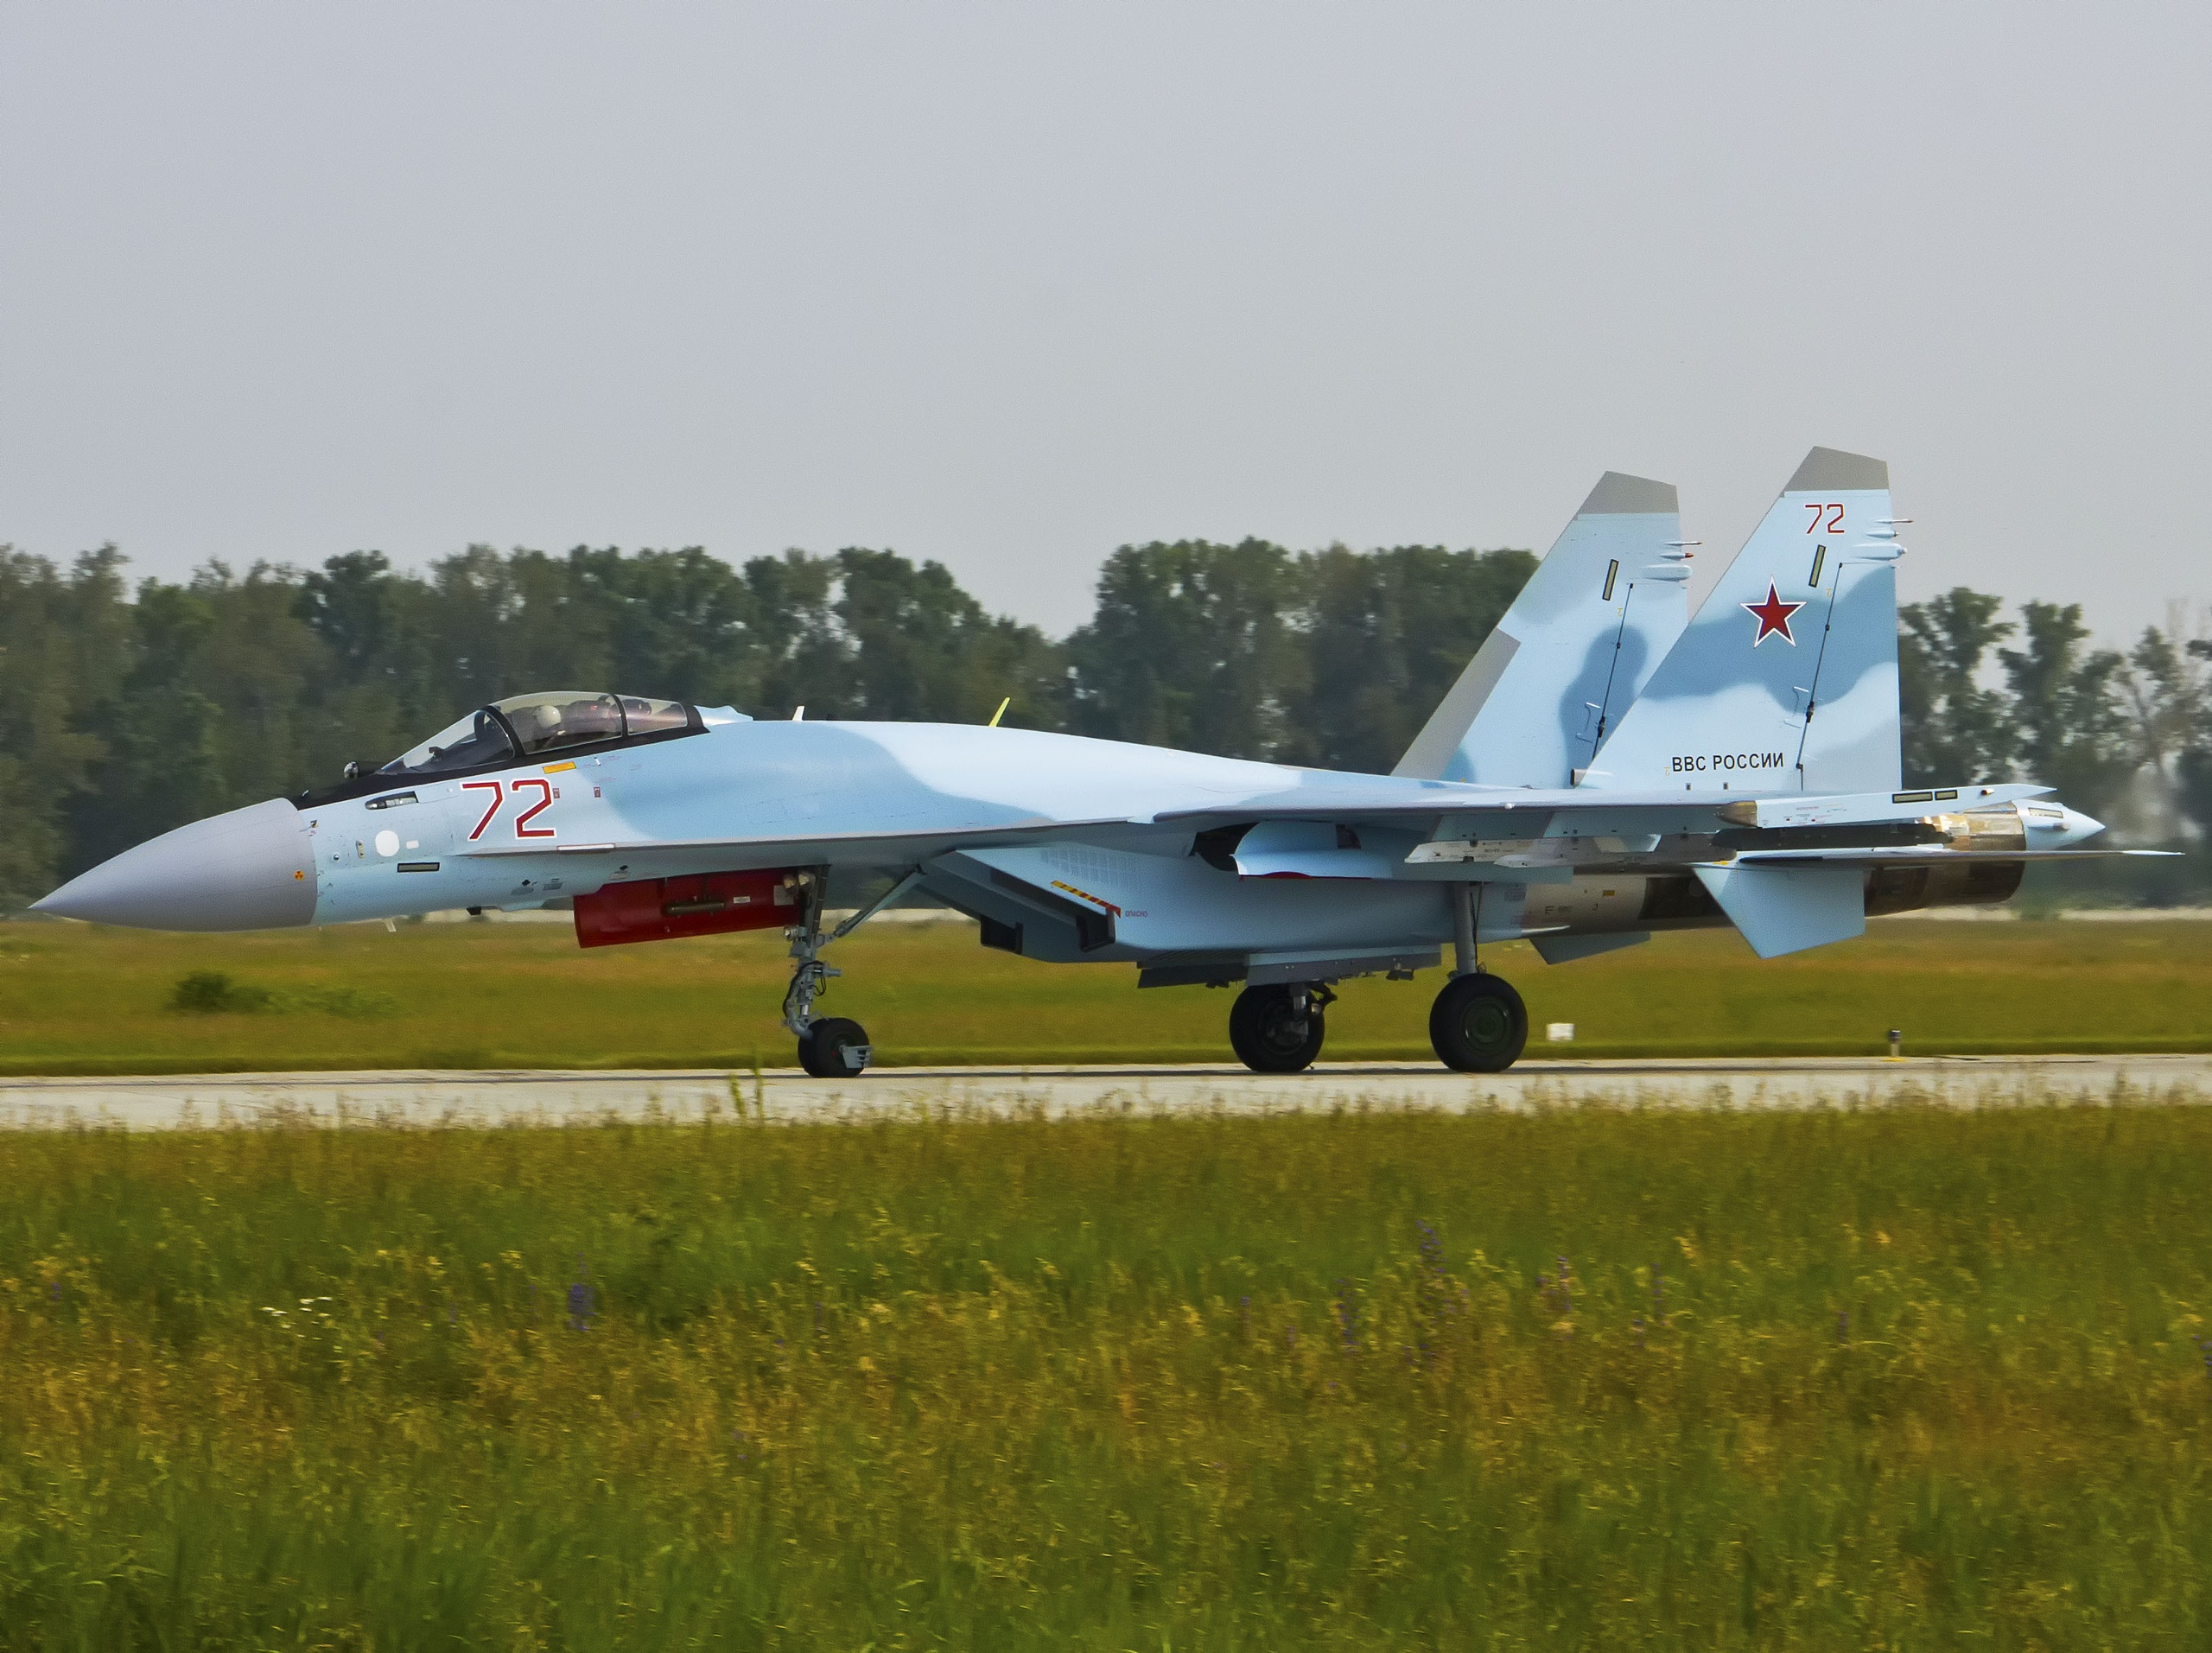 The regiment at the airport Besovets received five more Su-35S Su35S fighters, a regiment, fighters, fighter, aviation, aircraft, buildings, KnAAZ, district 159th, military, mixed, army, division, Besovets, Guards, composition, red, Russia, airborne